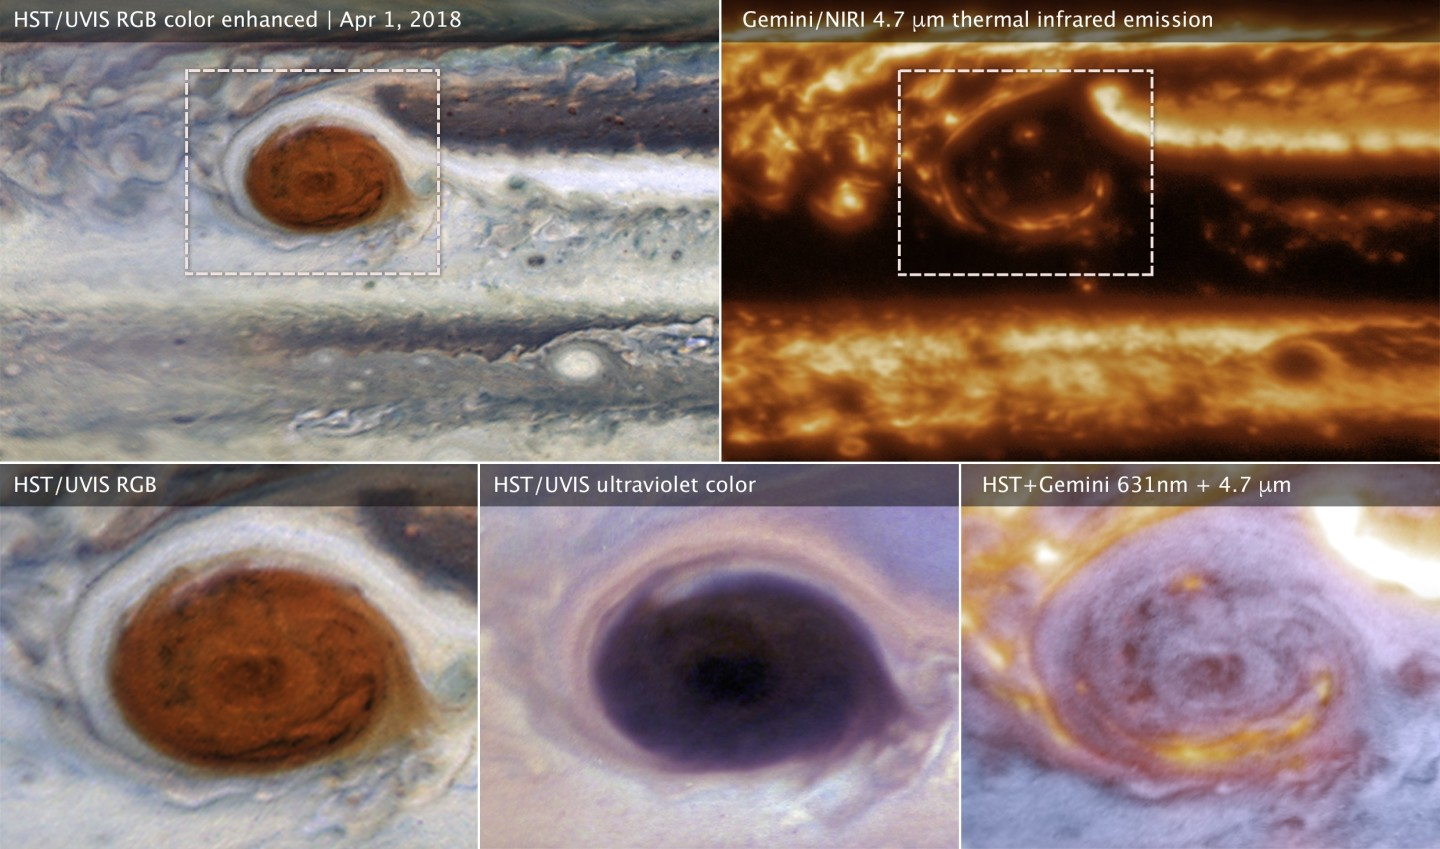 Scientists have probed the mysteries of Jupiter's Great Red Spot using a mix of infrared and visible light observations